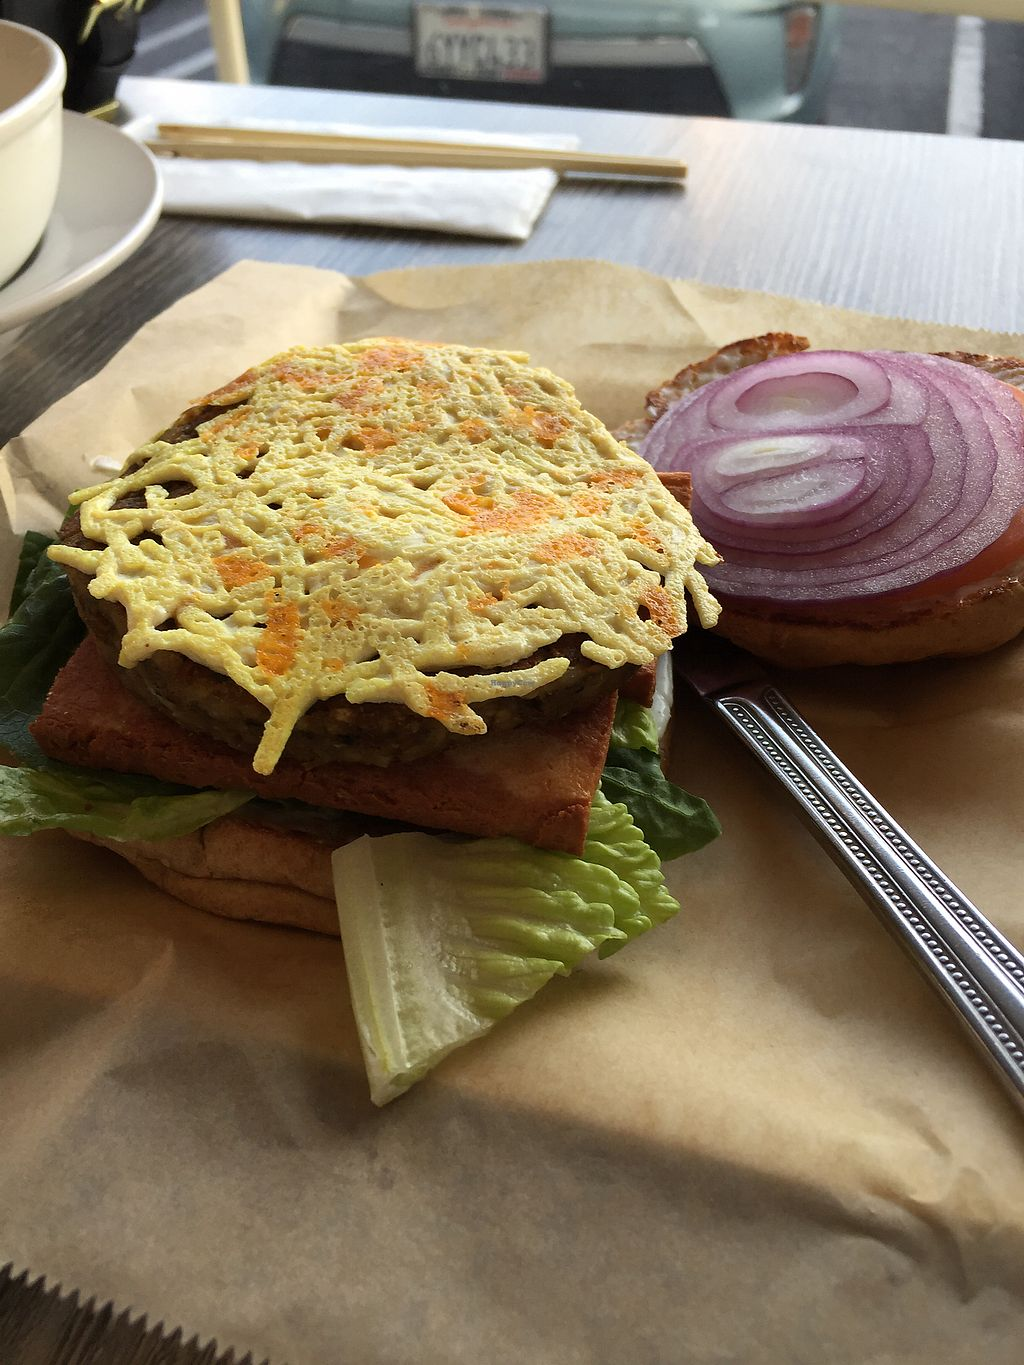 """Photo of Vegan Glory  by <a href=""""/members/profile/R-MV"""">R-MV</a> <br/>Veggie Burger <br/> October 9, 2017  - <a href='/contact/abuse/image/5129/313413'>Report</a>"""